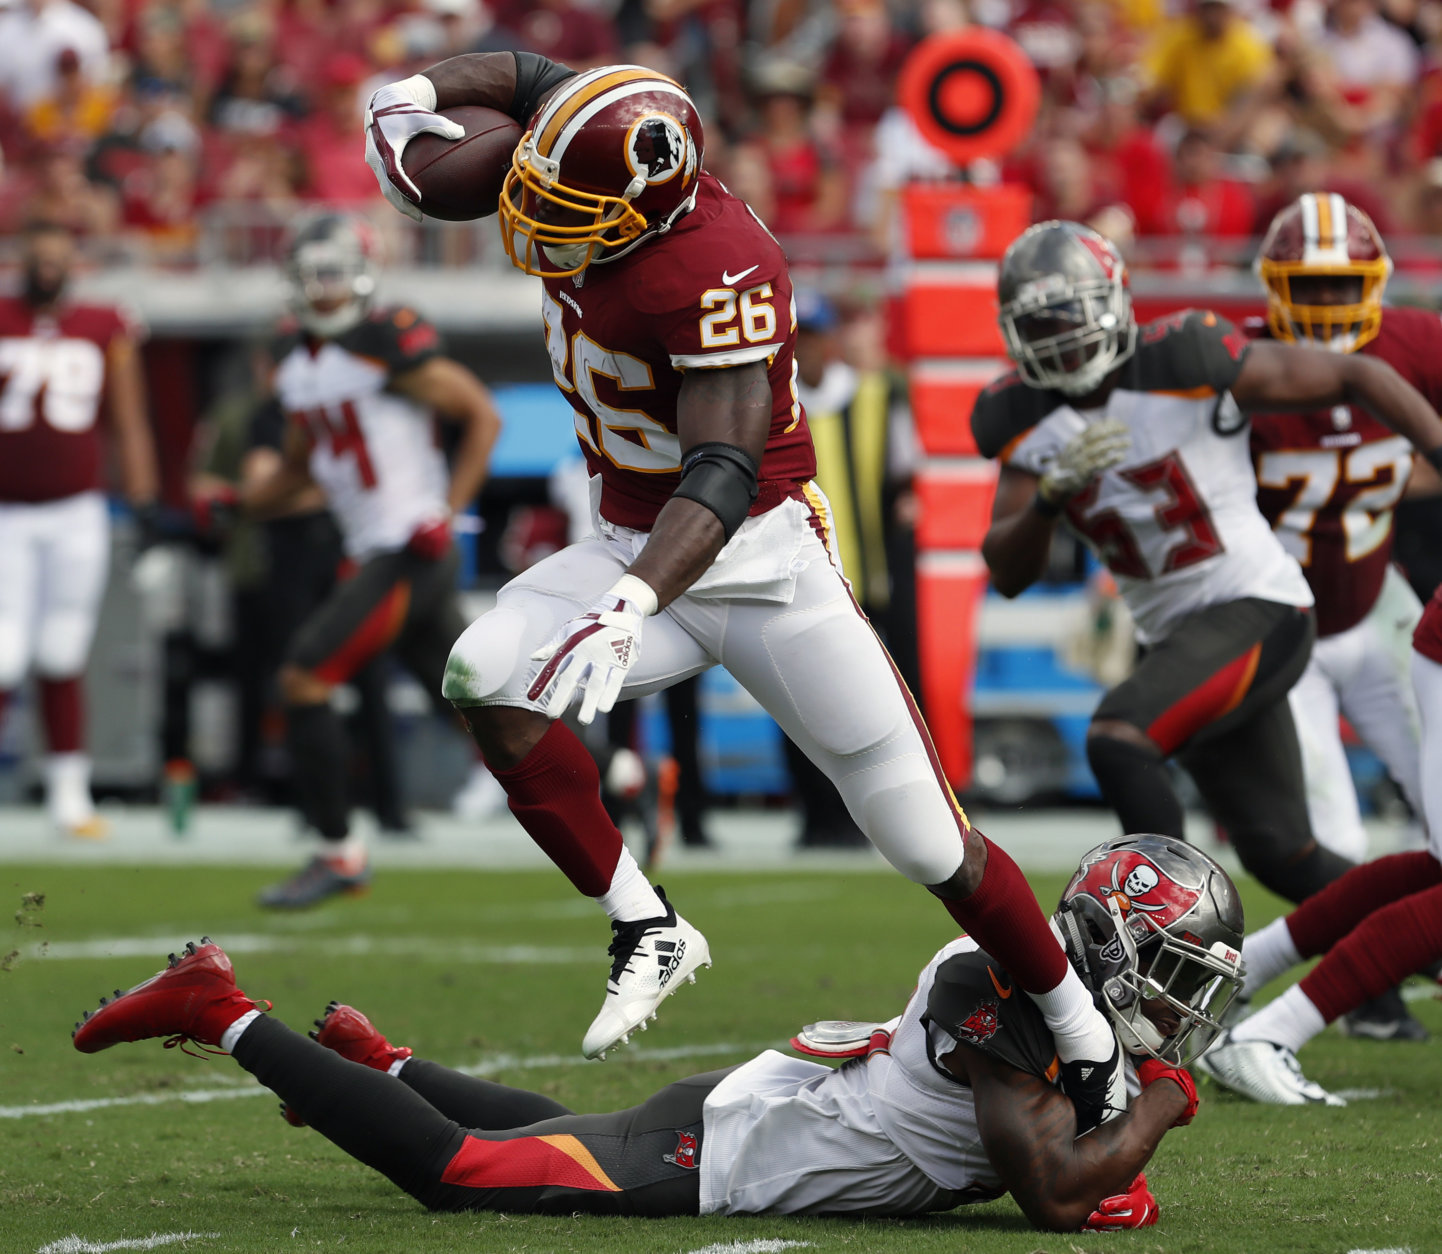 Washington Redskins running back Adrian Peterson (26) eludes a tackle by Tampa Bay Buccaneers free safety Jordan Whitehead (31) during the first half of an NFL football game Sunday, Nov. 11, 2018, in Tampa, Fla. (AP Photo/Mark LoMoglio)